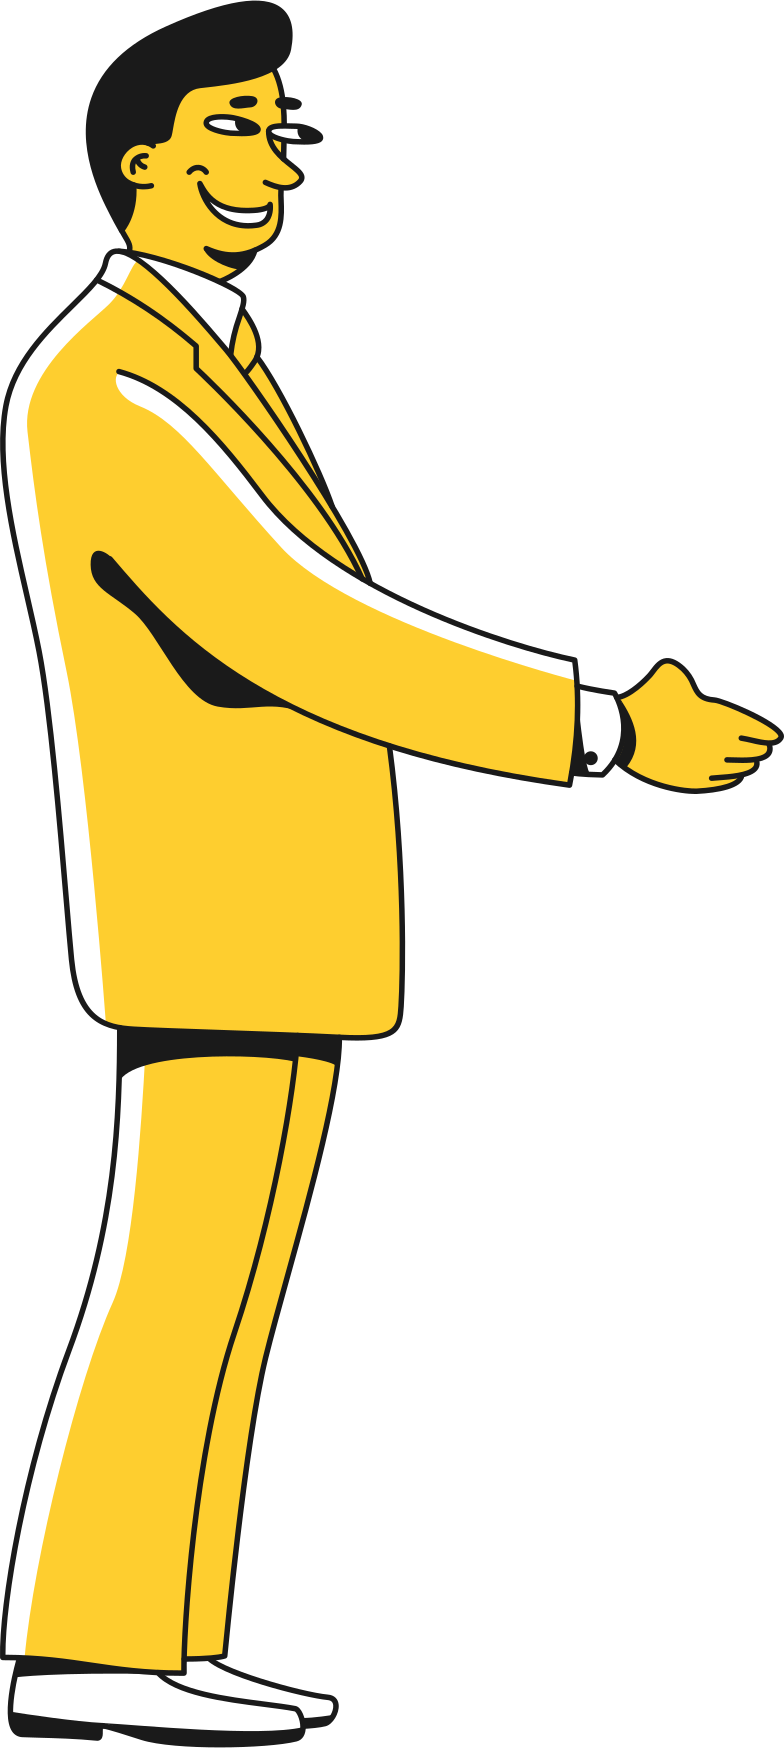 style politician shaking hand Vector images in PNG and SVG | Icons8 Illustrations